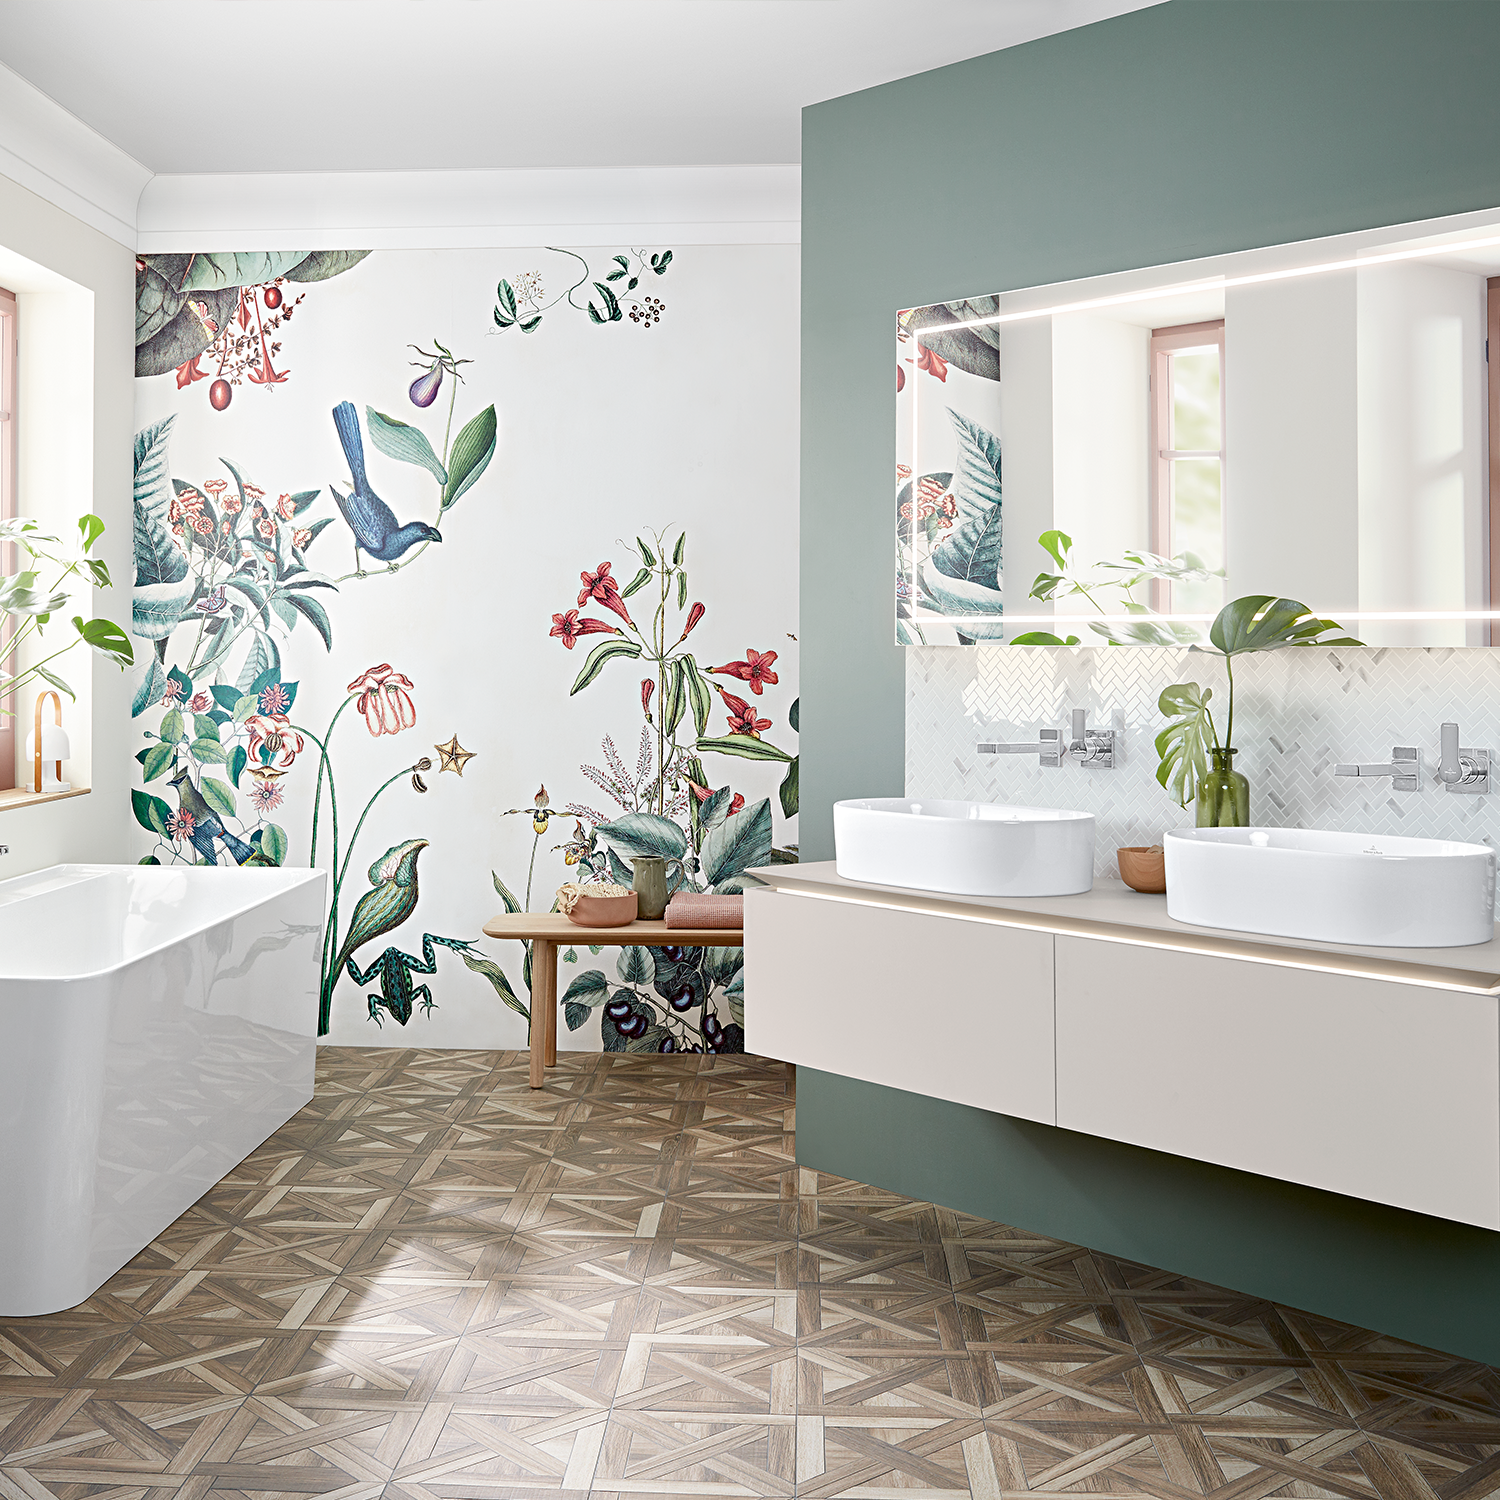 Do You Need Inspiration For Your Family Bathroom Choose A Double Vanity Unit For Enough Space To Get Rea In 2020 Zen Badezimmer Badezimmer Innenausstattung Bad Design